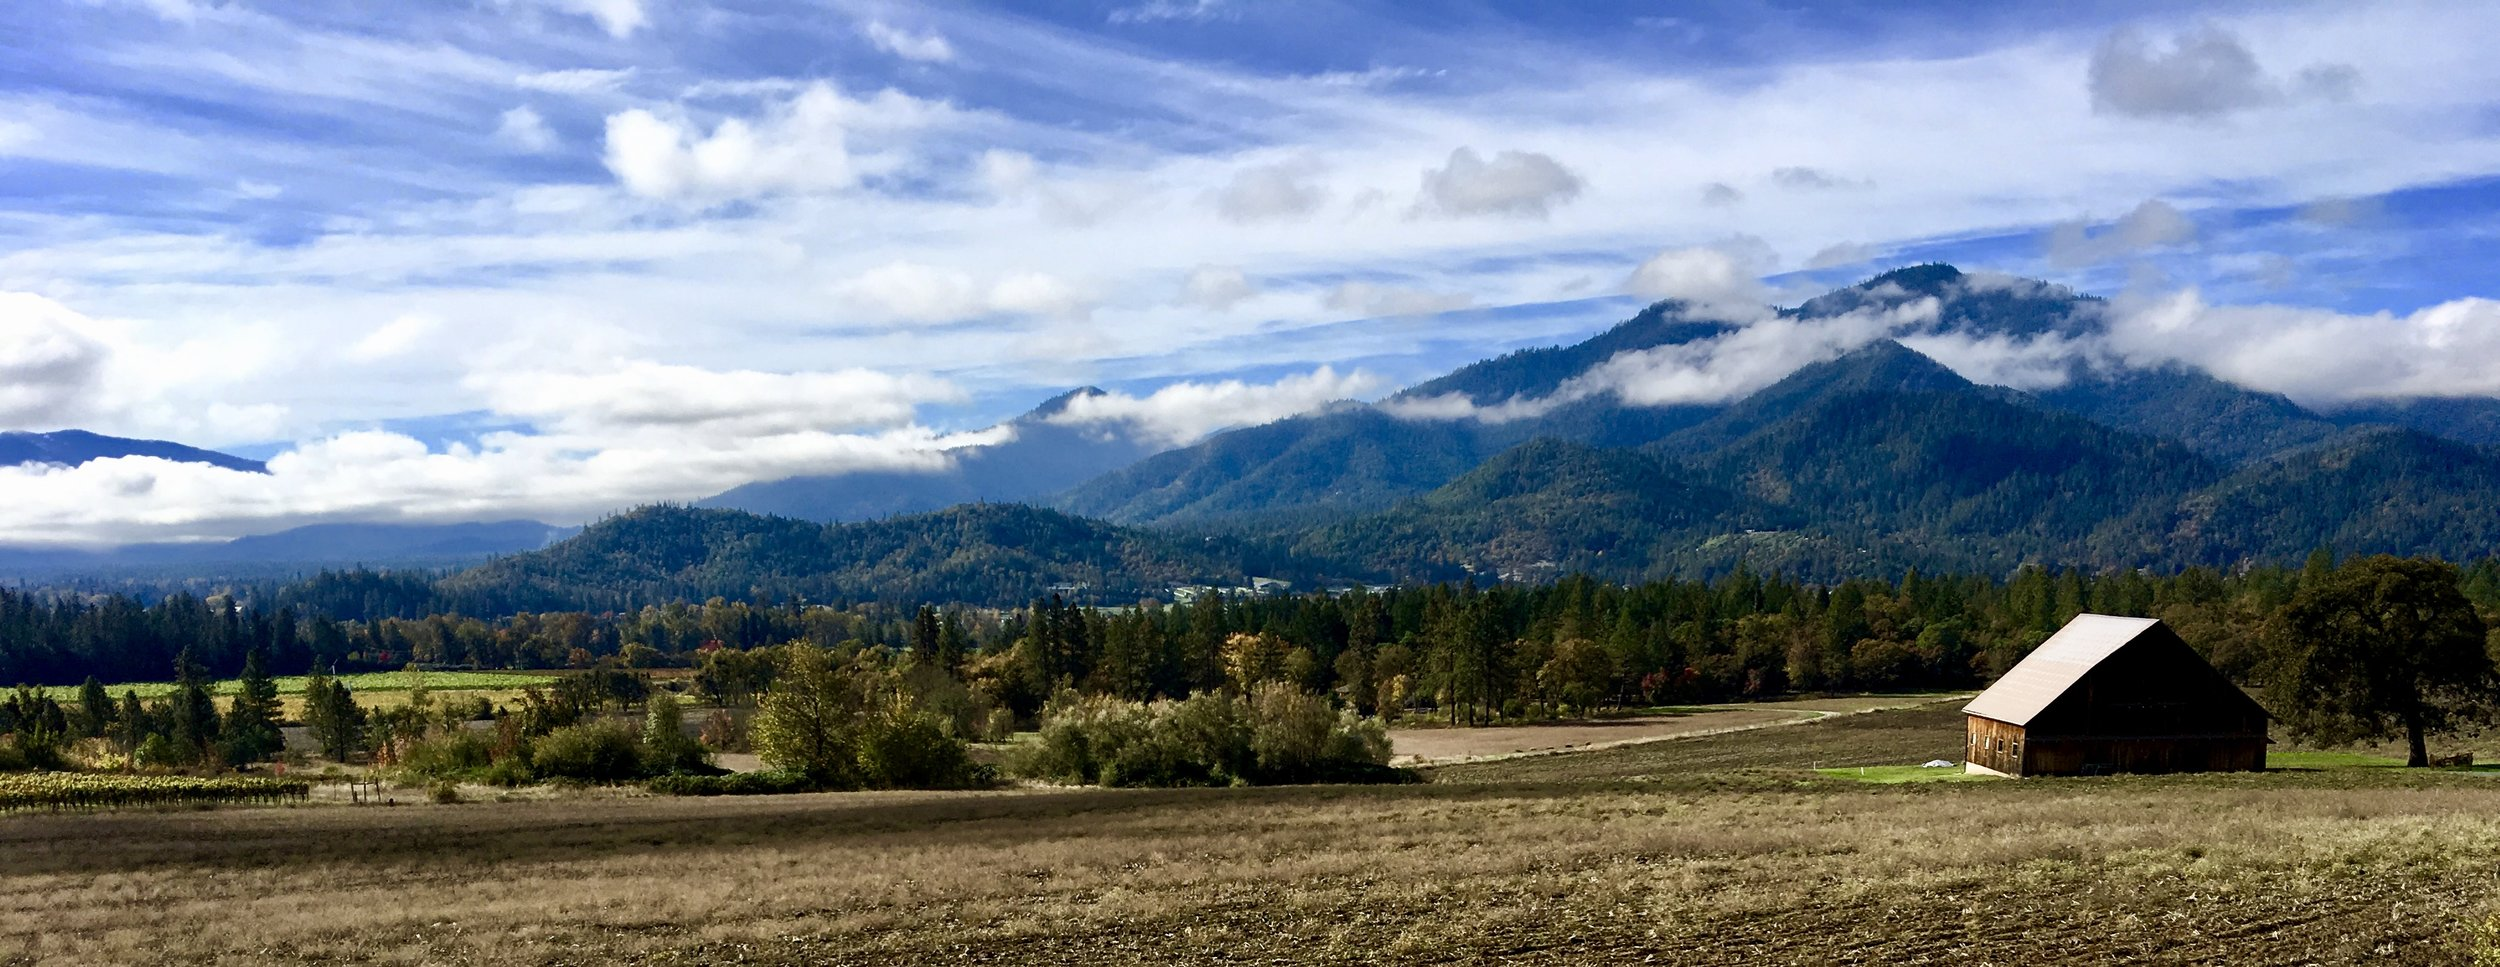 An emerging American AVA - The Applegate Valley Oregon